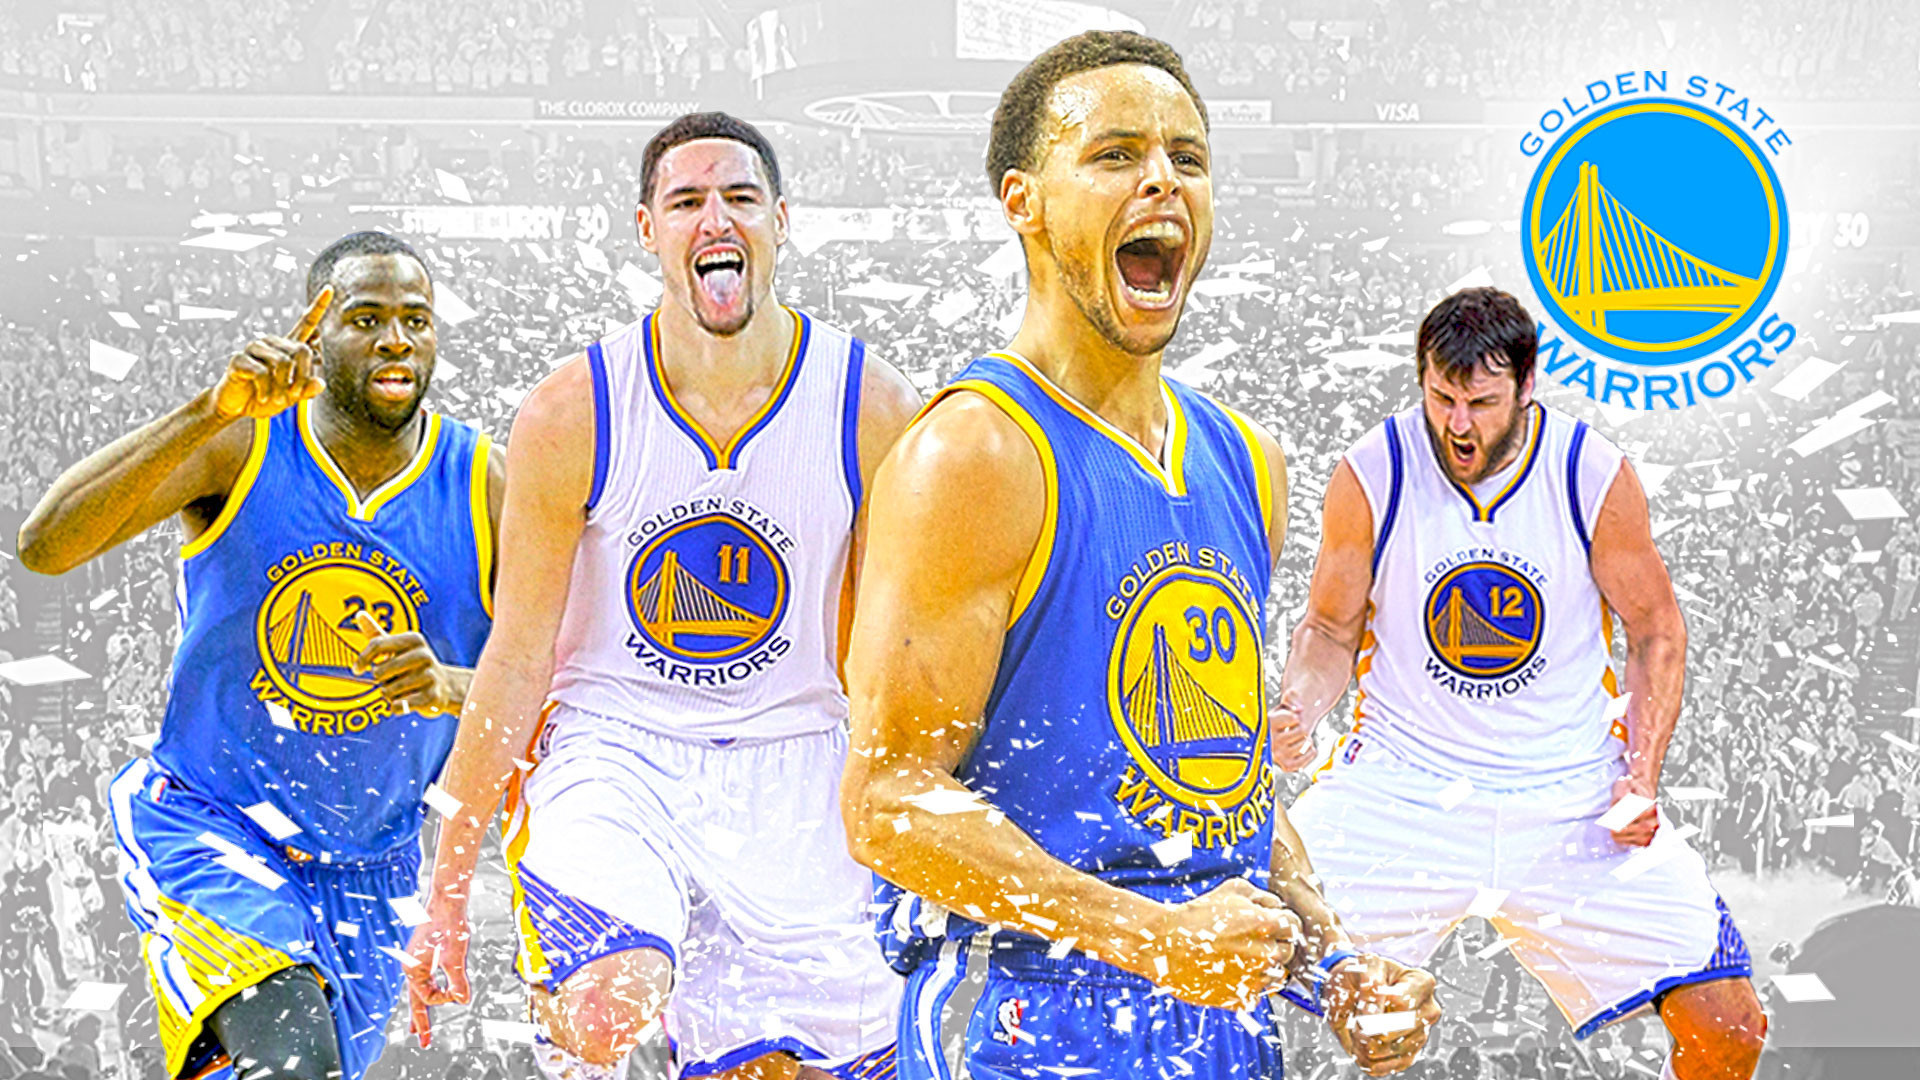 1920x1080 Golden State Warriors Splash Brothers Wallpaper by tmaclabi on ...  splashbrothers ...